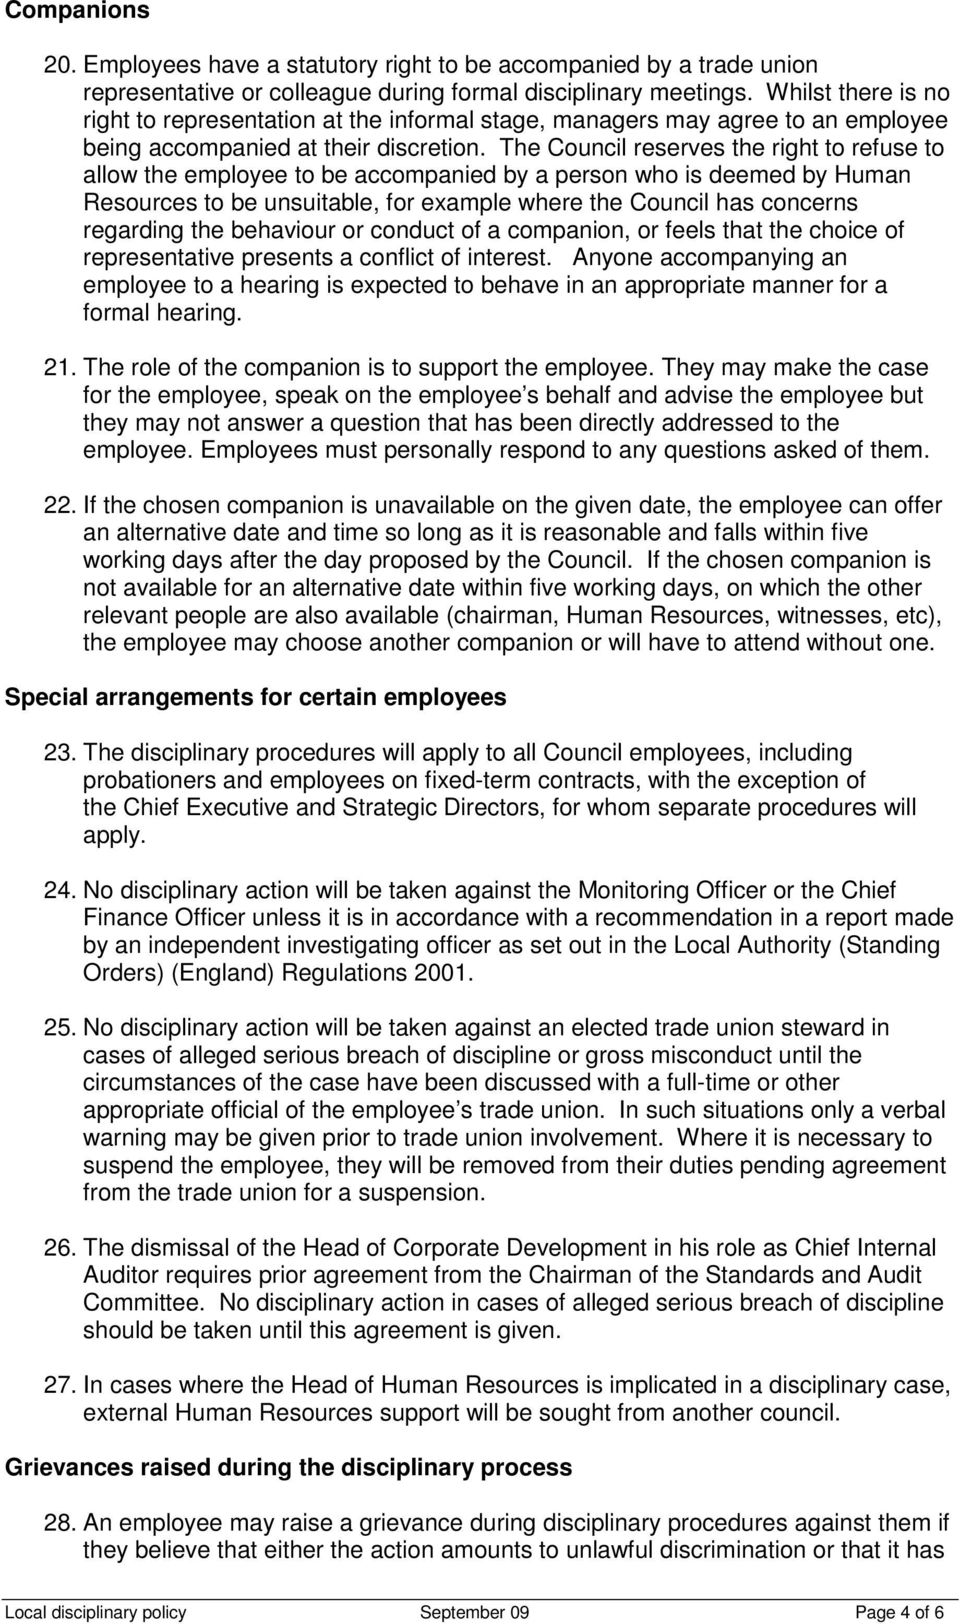 The Council reserves the right to refuse to allow the employee to be accompanied by a person who is deemed by Human Resources to be unsuitable, for example where the Council has concerns regarding